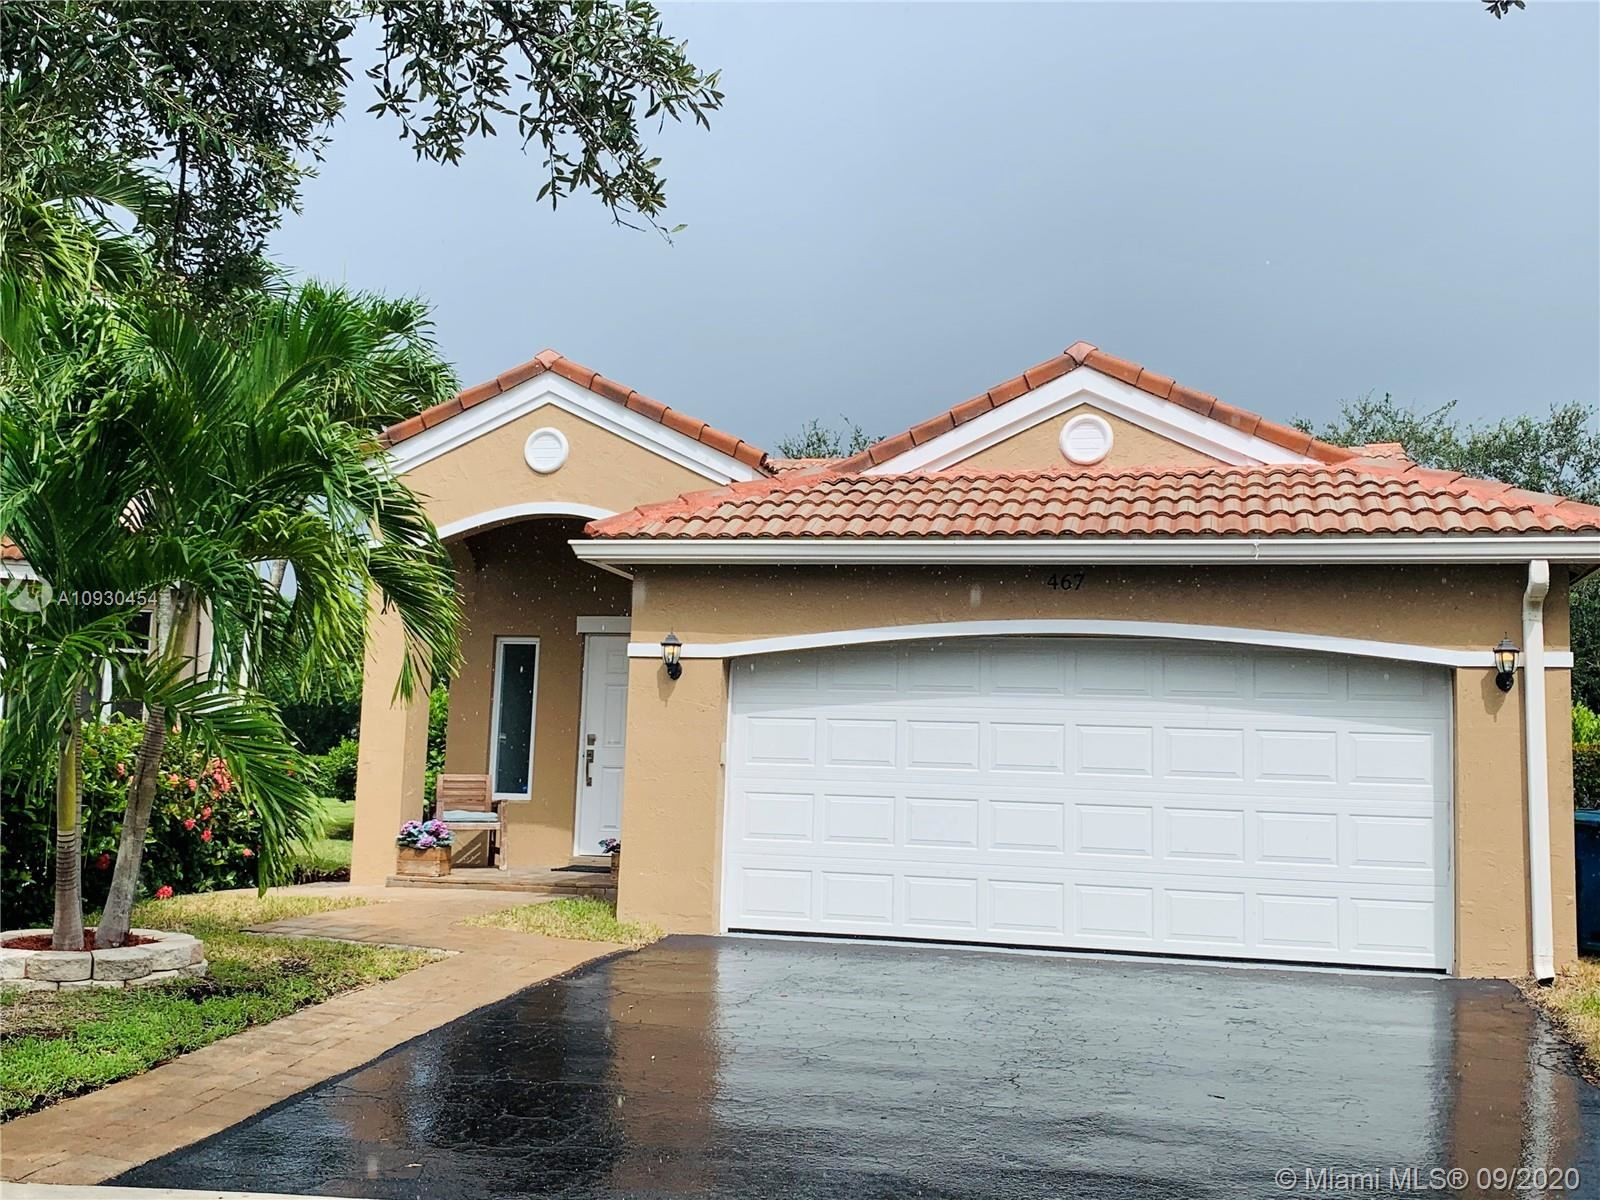 Photo of 467 Talavera Rd, Weston, FL 33326 (MLS # A10930454)